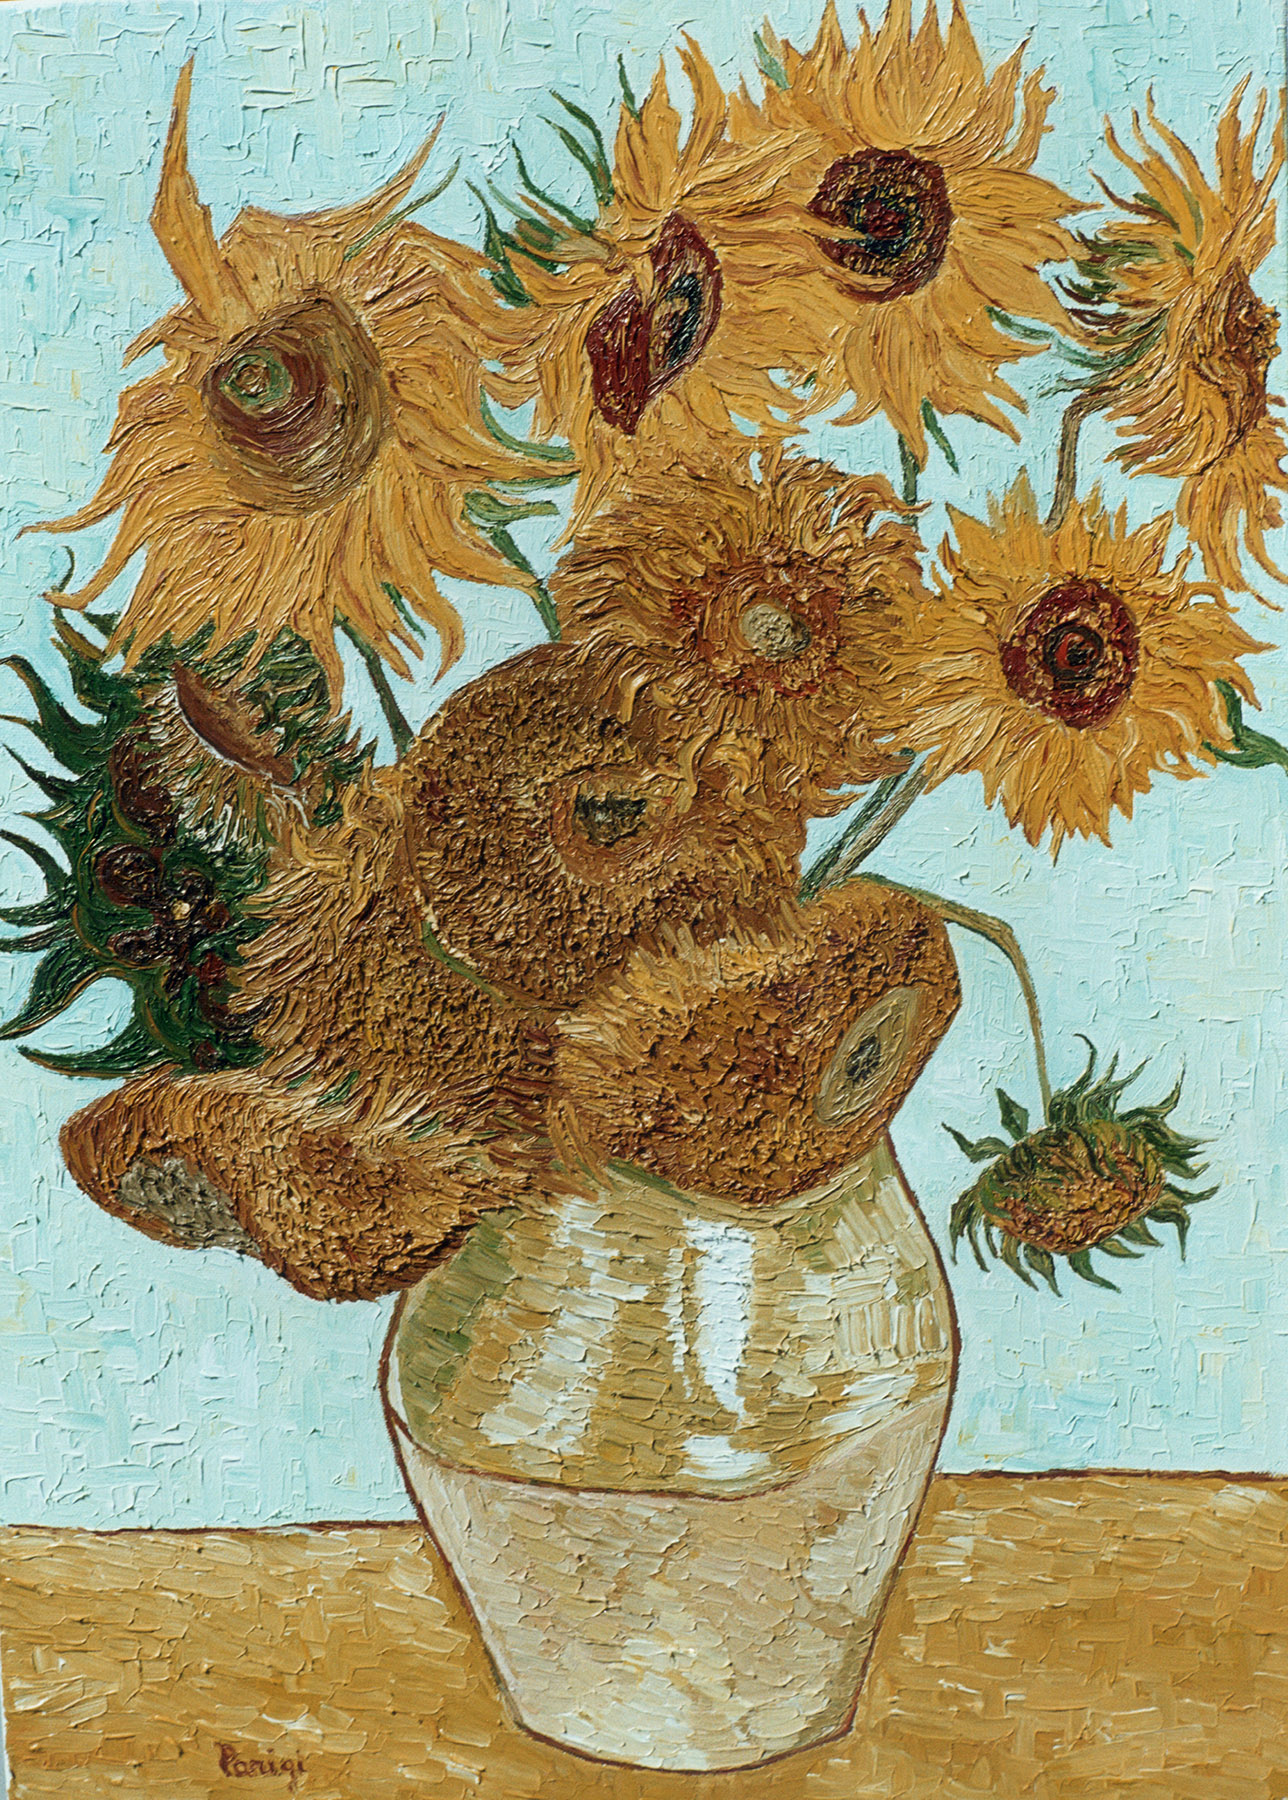 Reproductions and Copies of masterpieces oil on canvas Vincent Van Gogh revisited by Ida Parigi's paintings: Still Life: Vase with Twelve Sunflowers